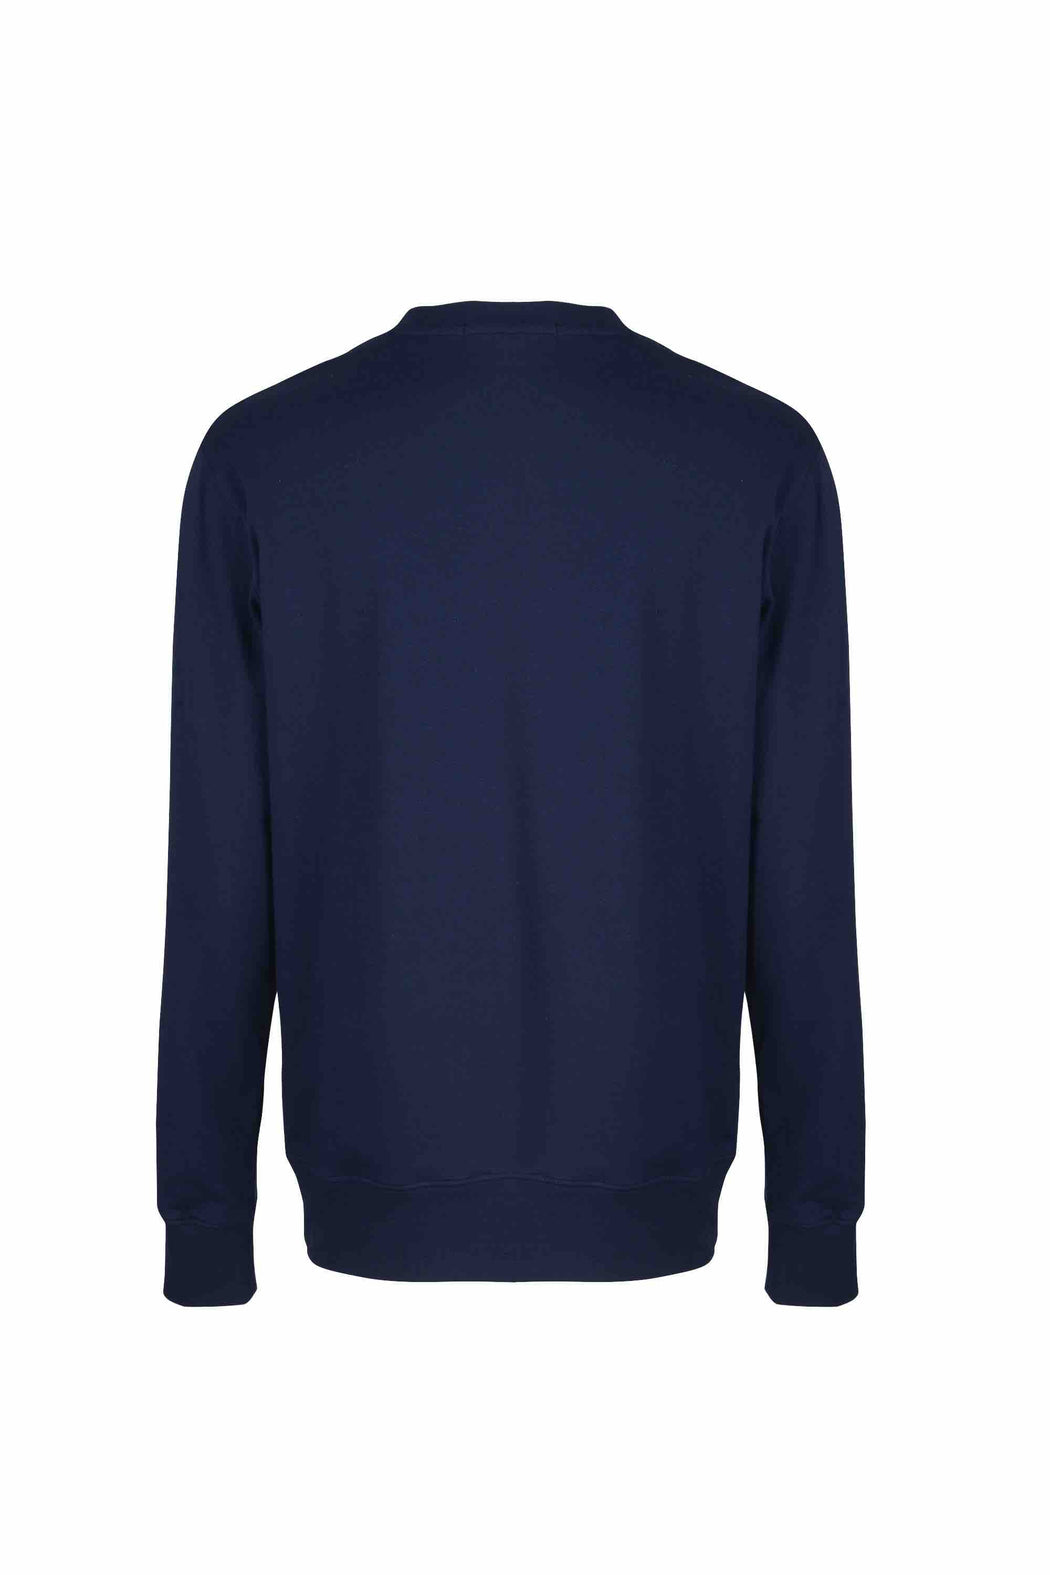 Back view of Men Nylon Pocket Blocked Sweatshirt, made with organic cotton in Navy